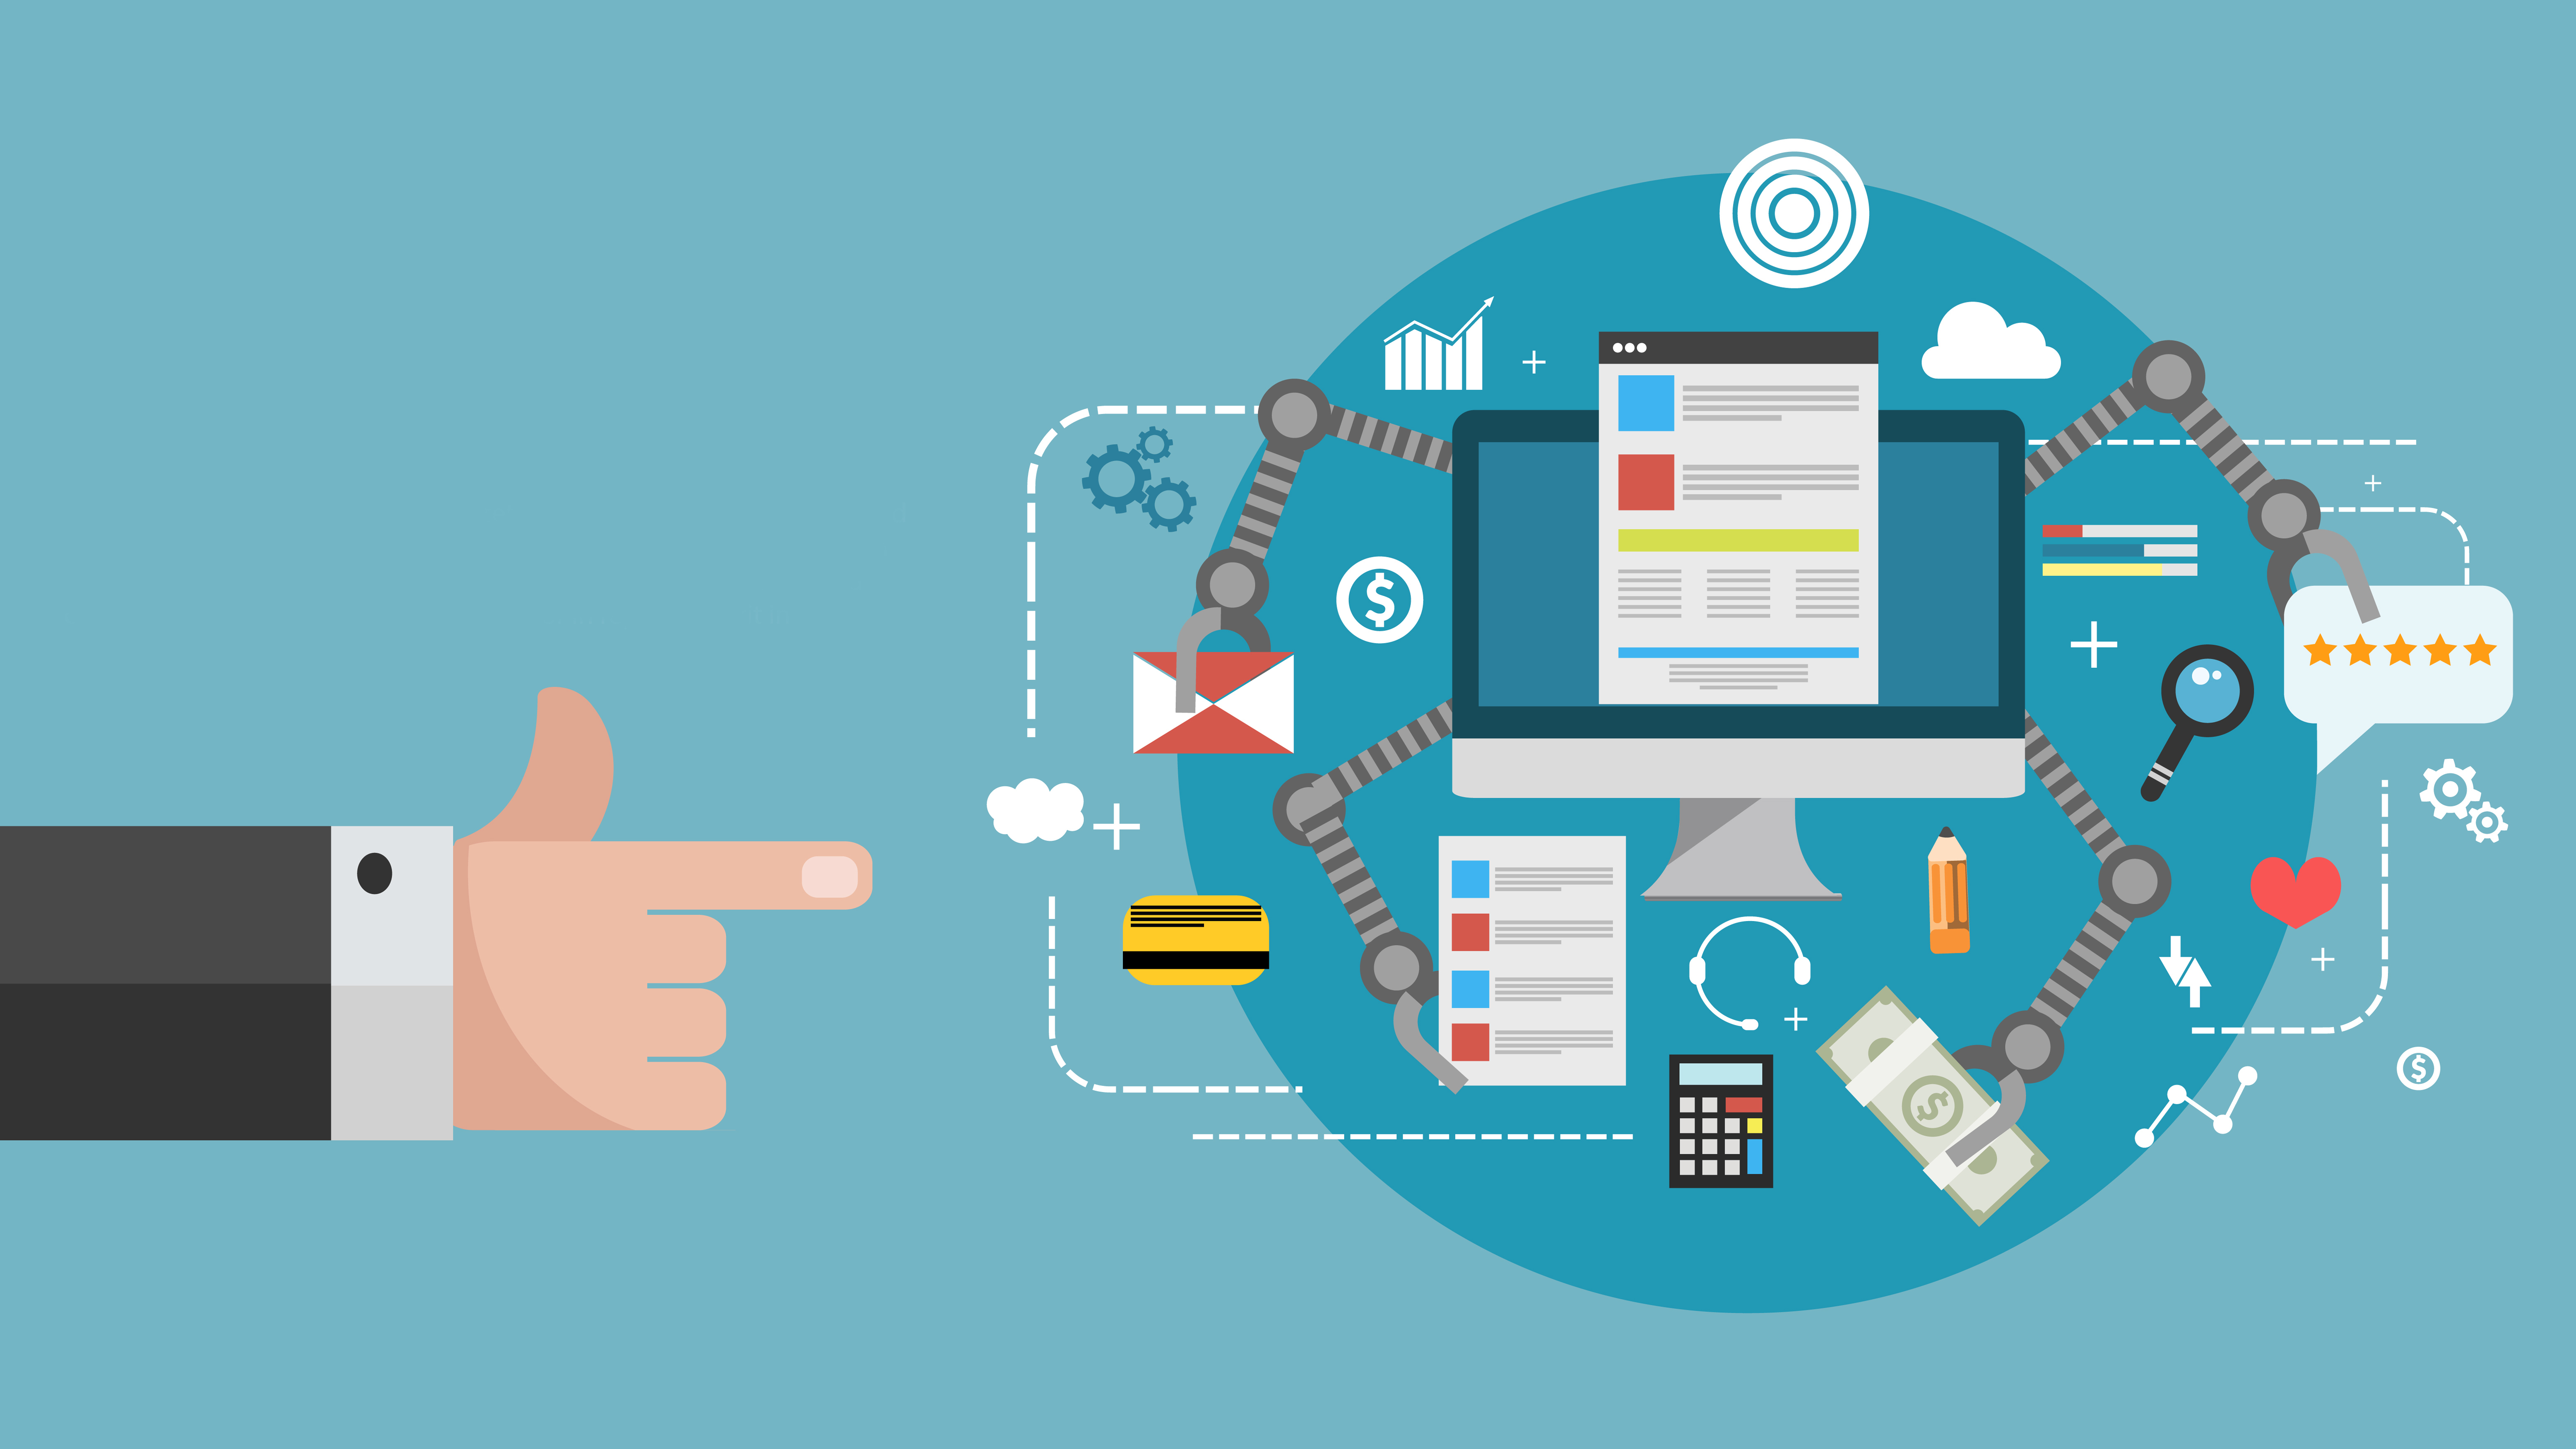 Integrating the Salesforce Platform: Words to the Wise